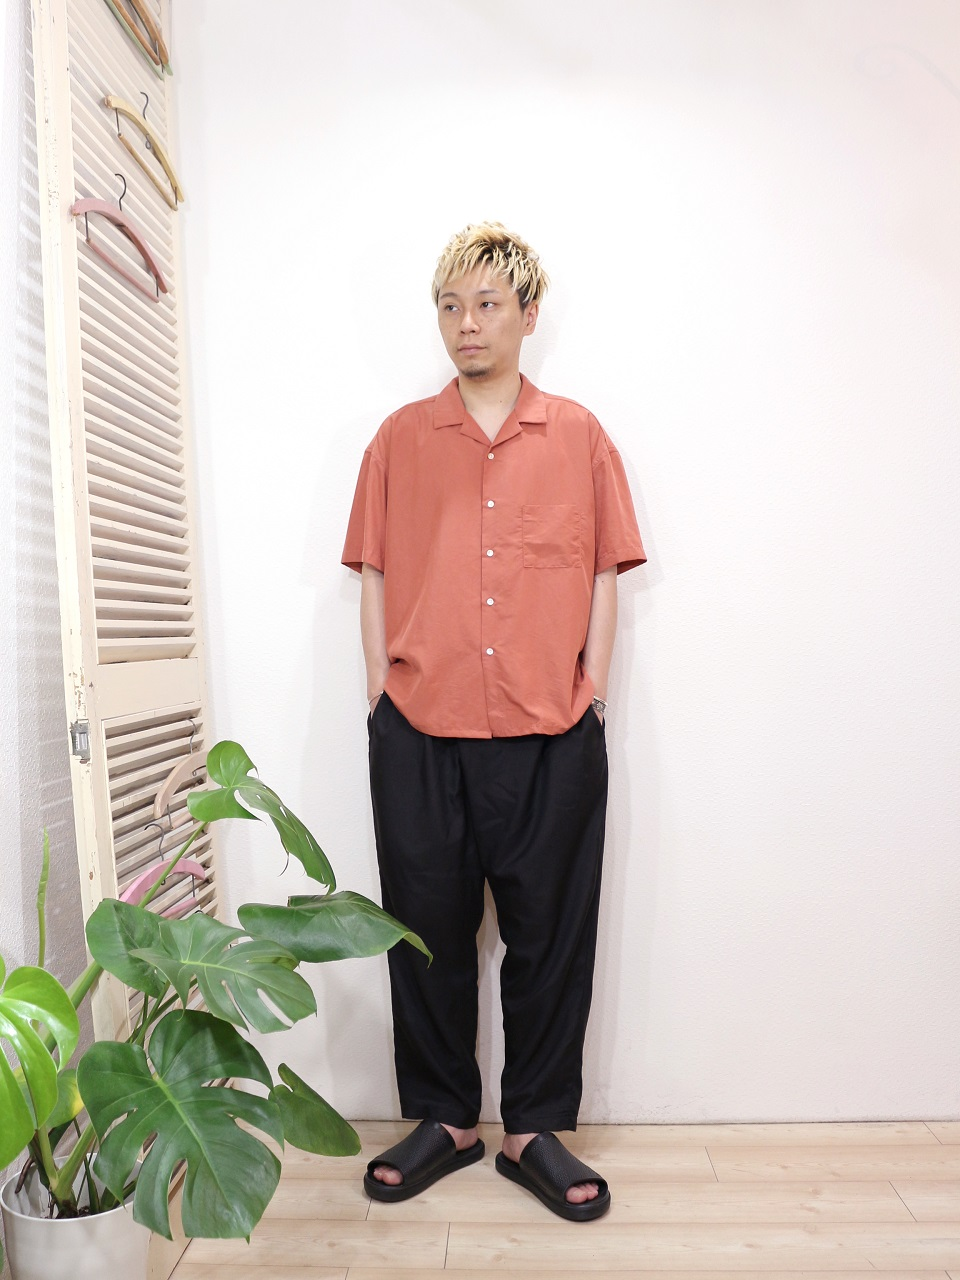 shirt/MANUAL ALPHABET-SMOOTH OPEN COLLAR SHT(SIZE 1)pants/MANUAL ALPHABET-SURGE EASY PANTS(SIZE 1)shoes/SUICOKE-SUBIM(US 8)を使ったコーディネート